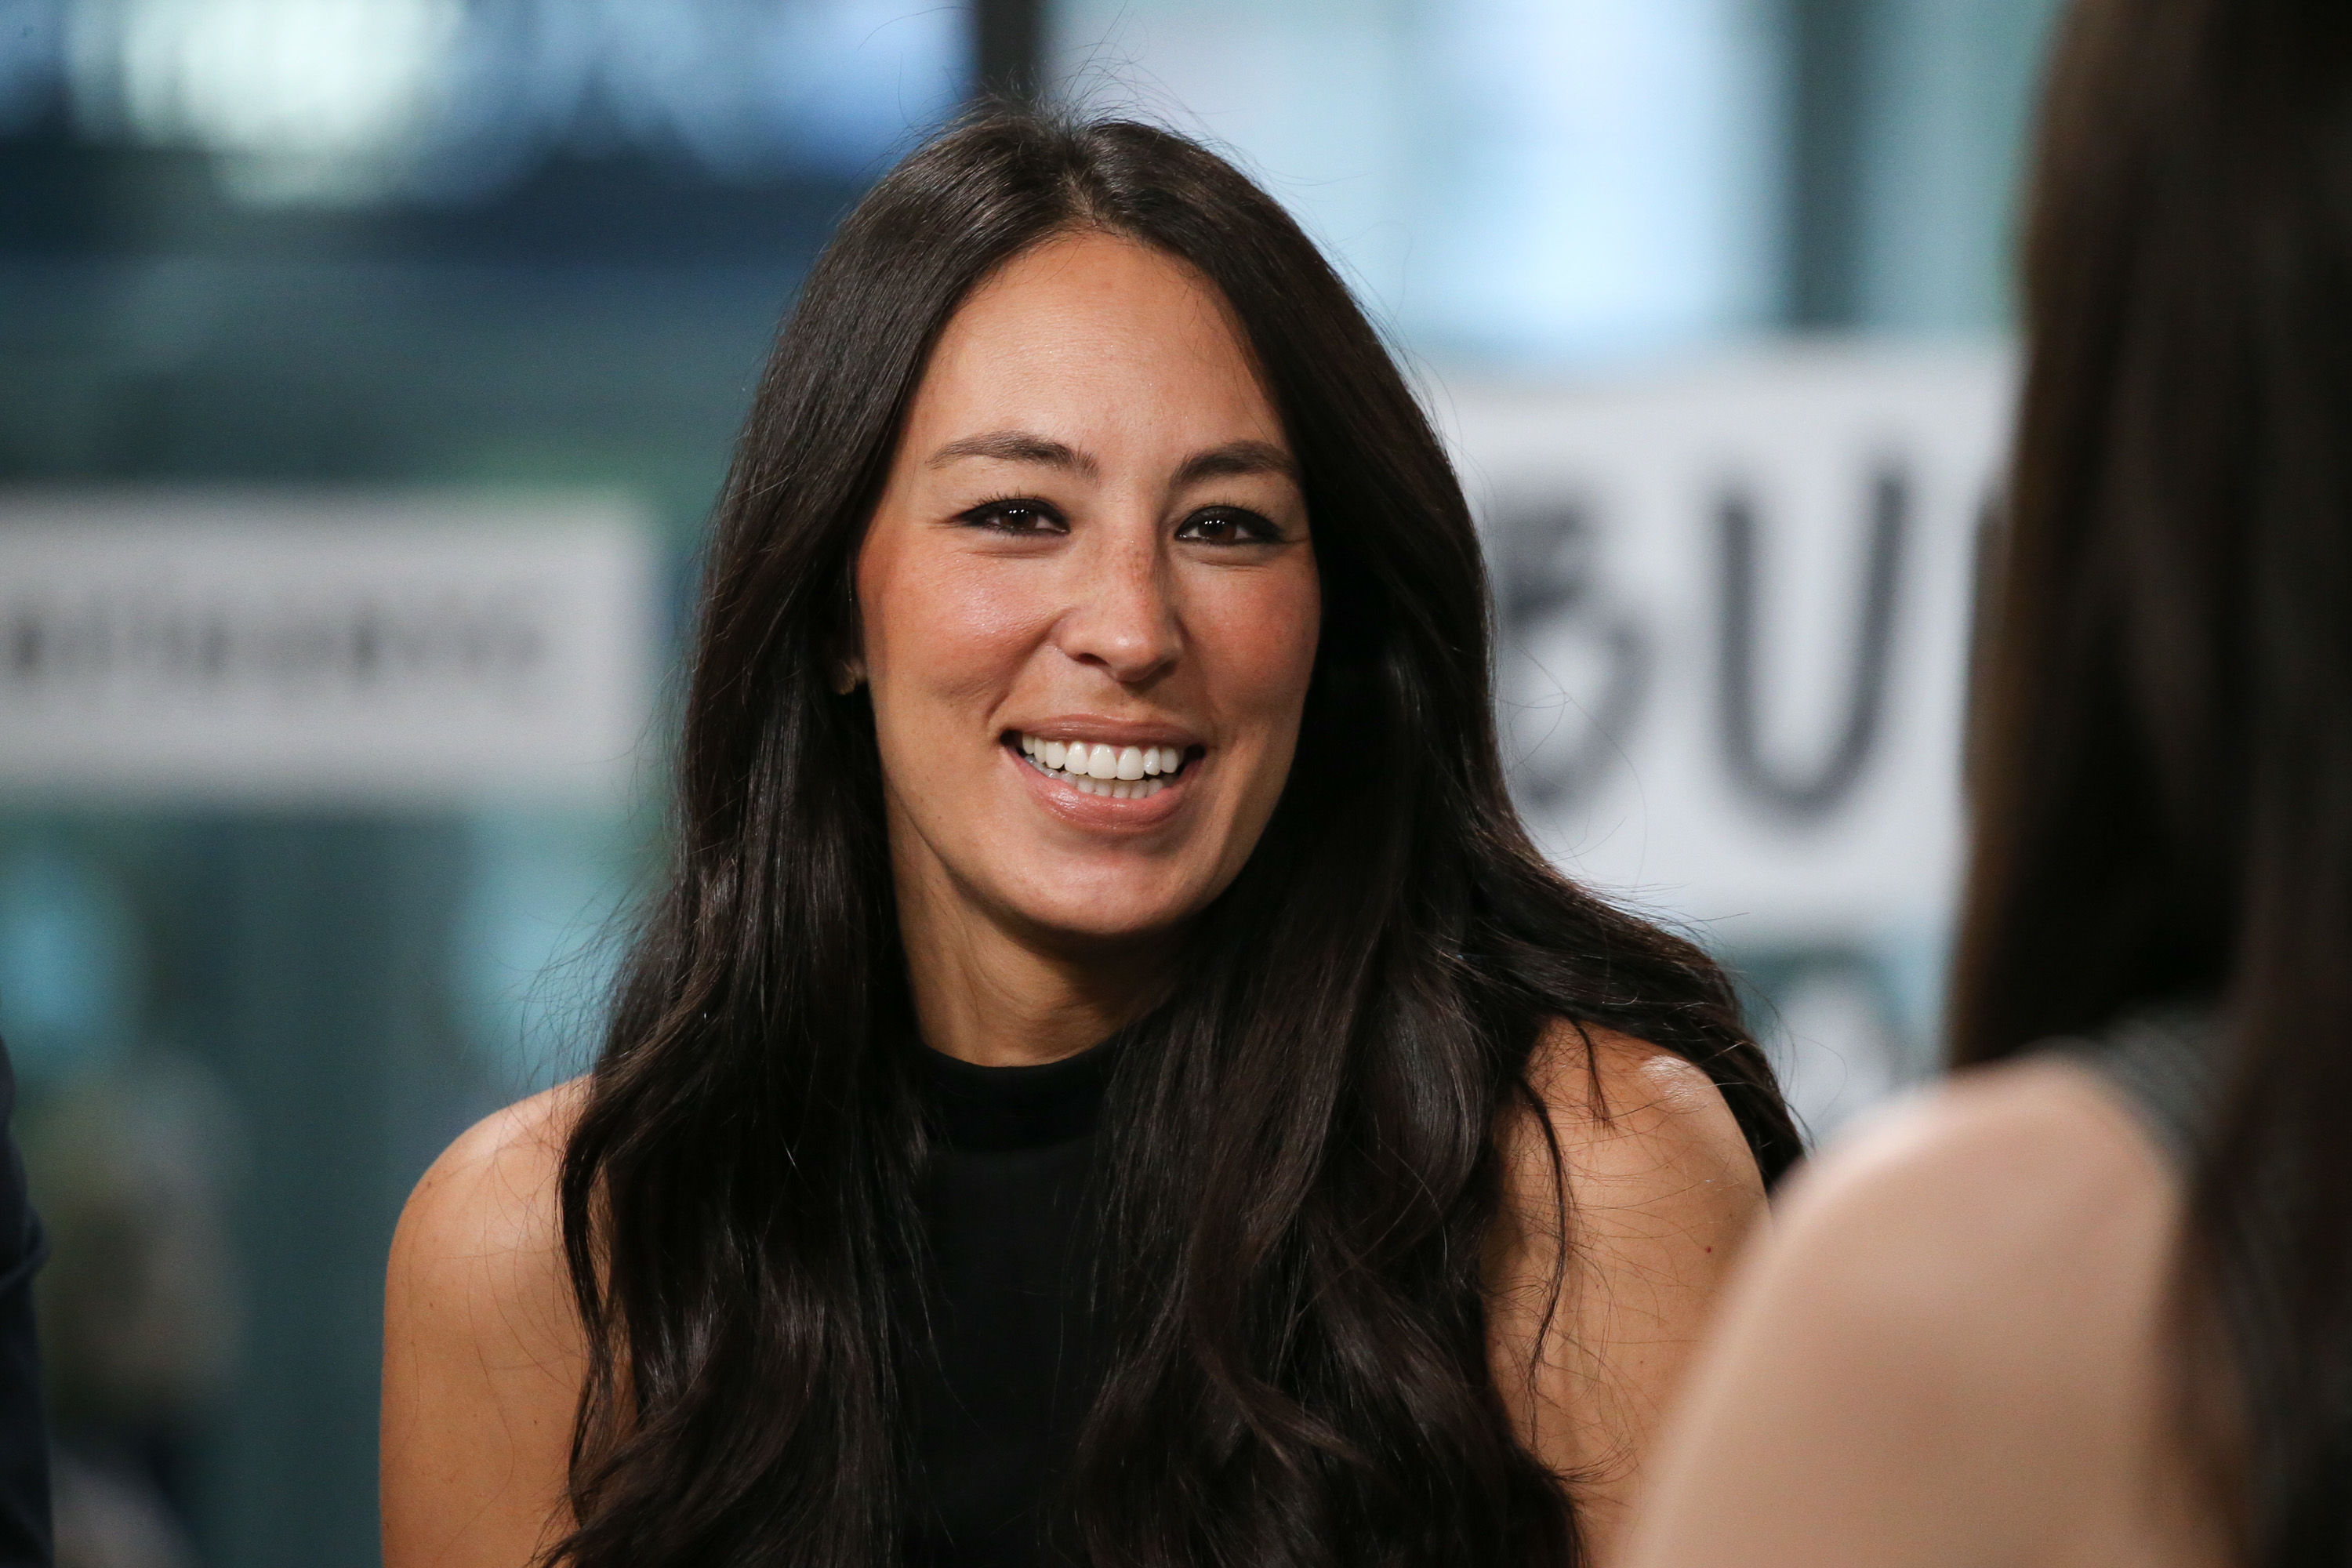 Joanna Gaines Has a Very Smart Cell Phone Etiquette Rule